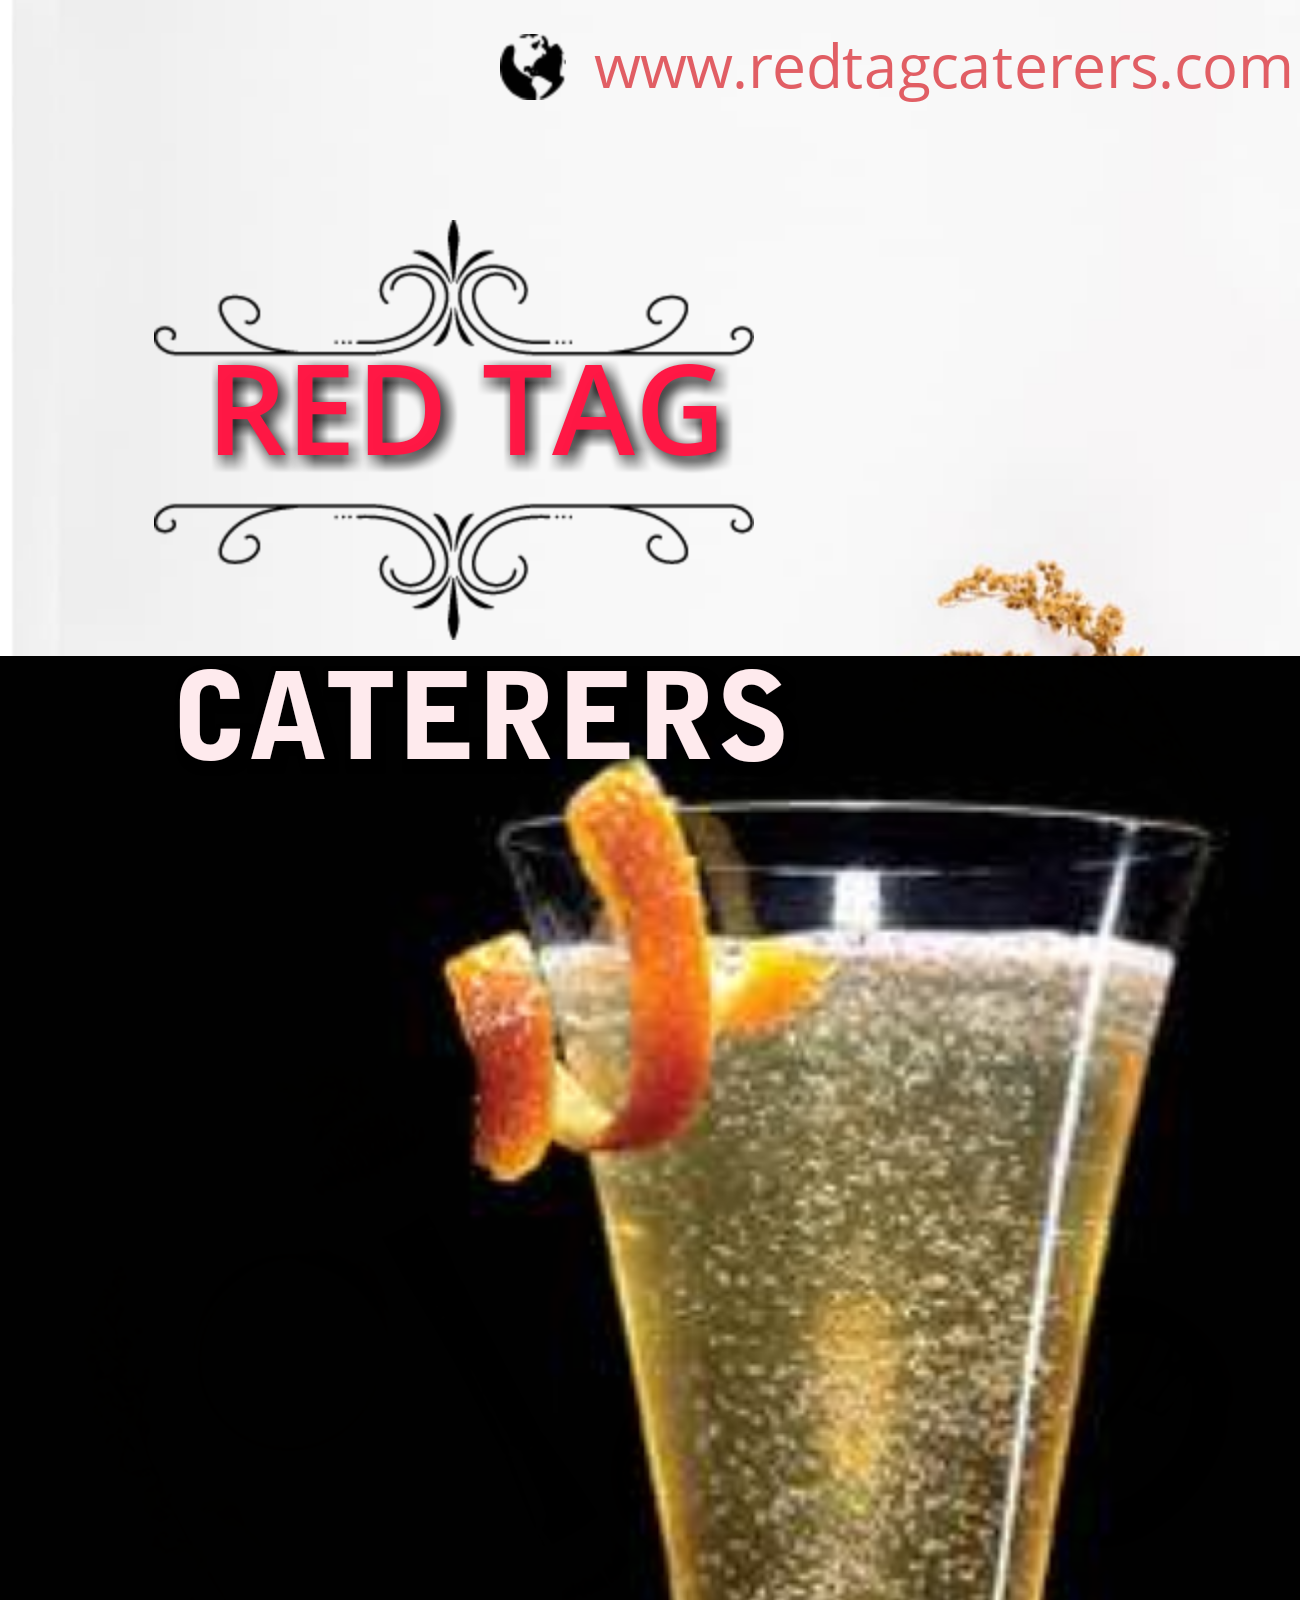 Red Tag Caterers, TOP 1 CATERERS IN LUDHIANA WITH PROFESSIONALS CHEFS, TOP CATERER IN LUDHIANA, TOP CATERING SERVICE IN LUDHIANA, BEST CATERERS IN LUDHIANA